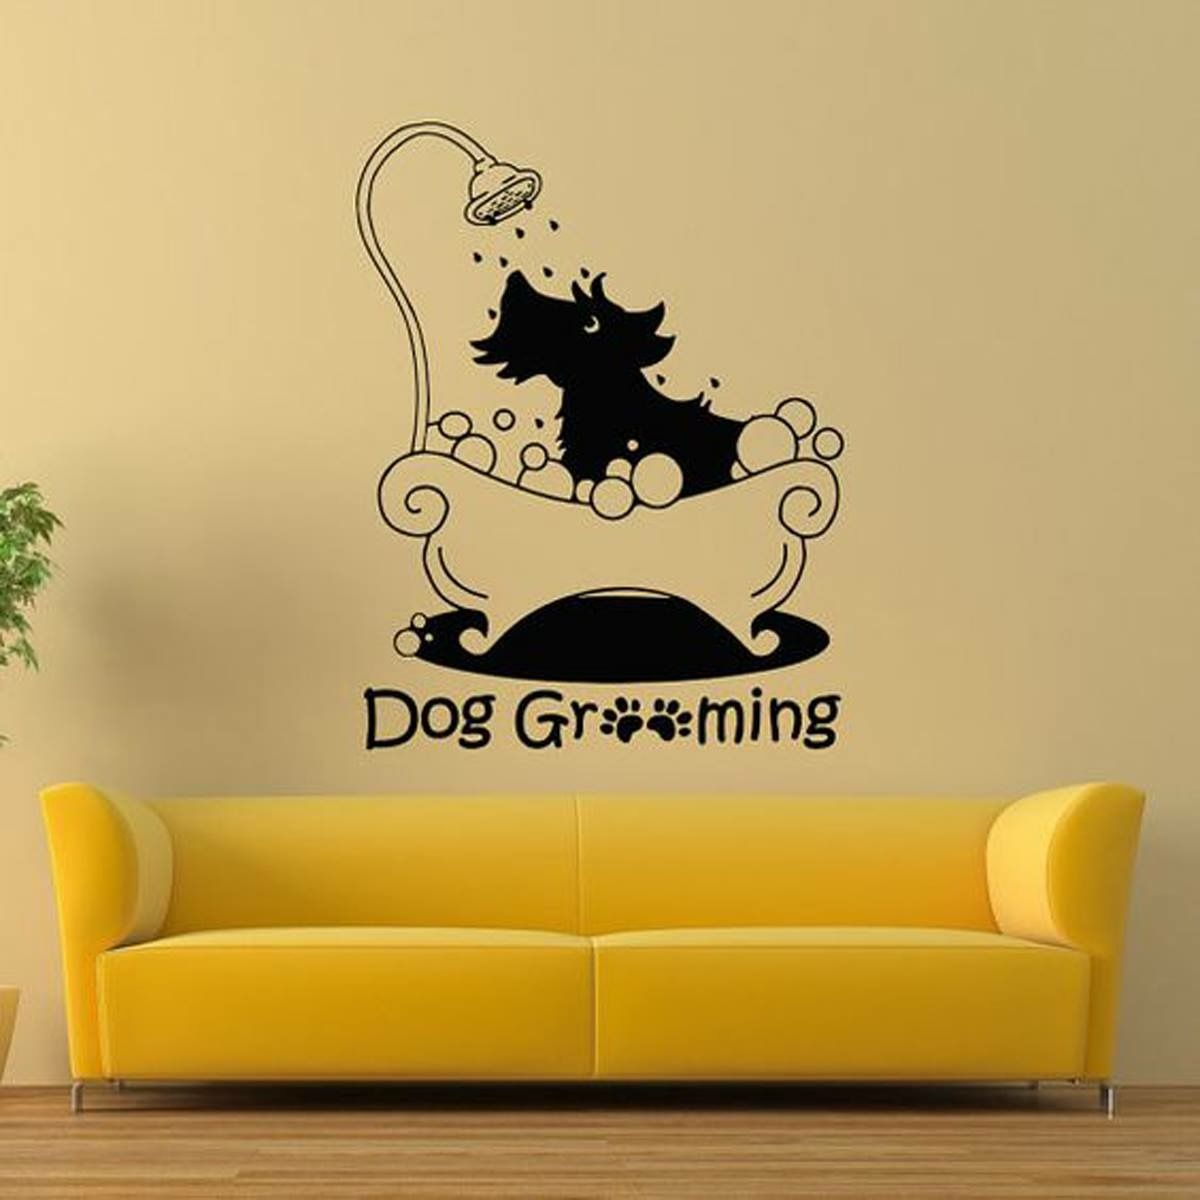 Paw Spa | Paw Spa | Pinterest | Grooming salon, Dog and Grooming shop